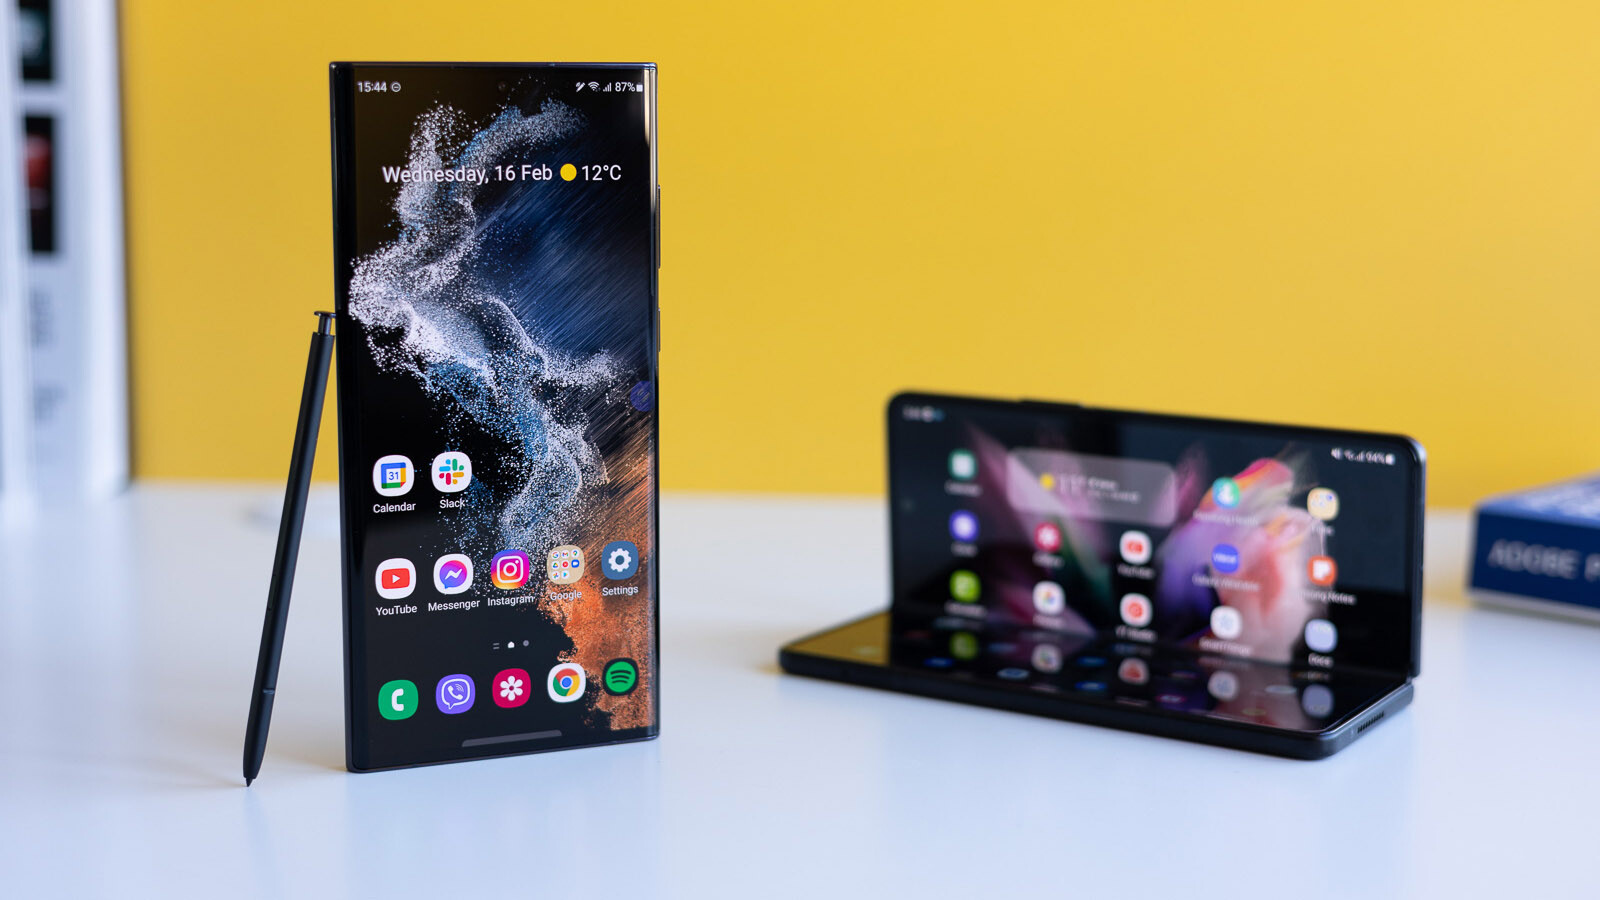 The best Samsung budget, midrange, and high end phones you can buy in 2019 - PhoneArena